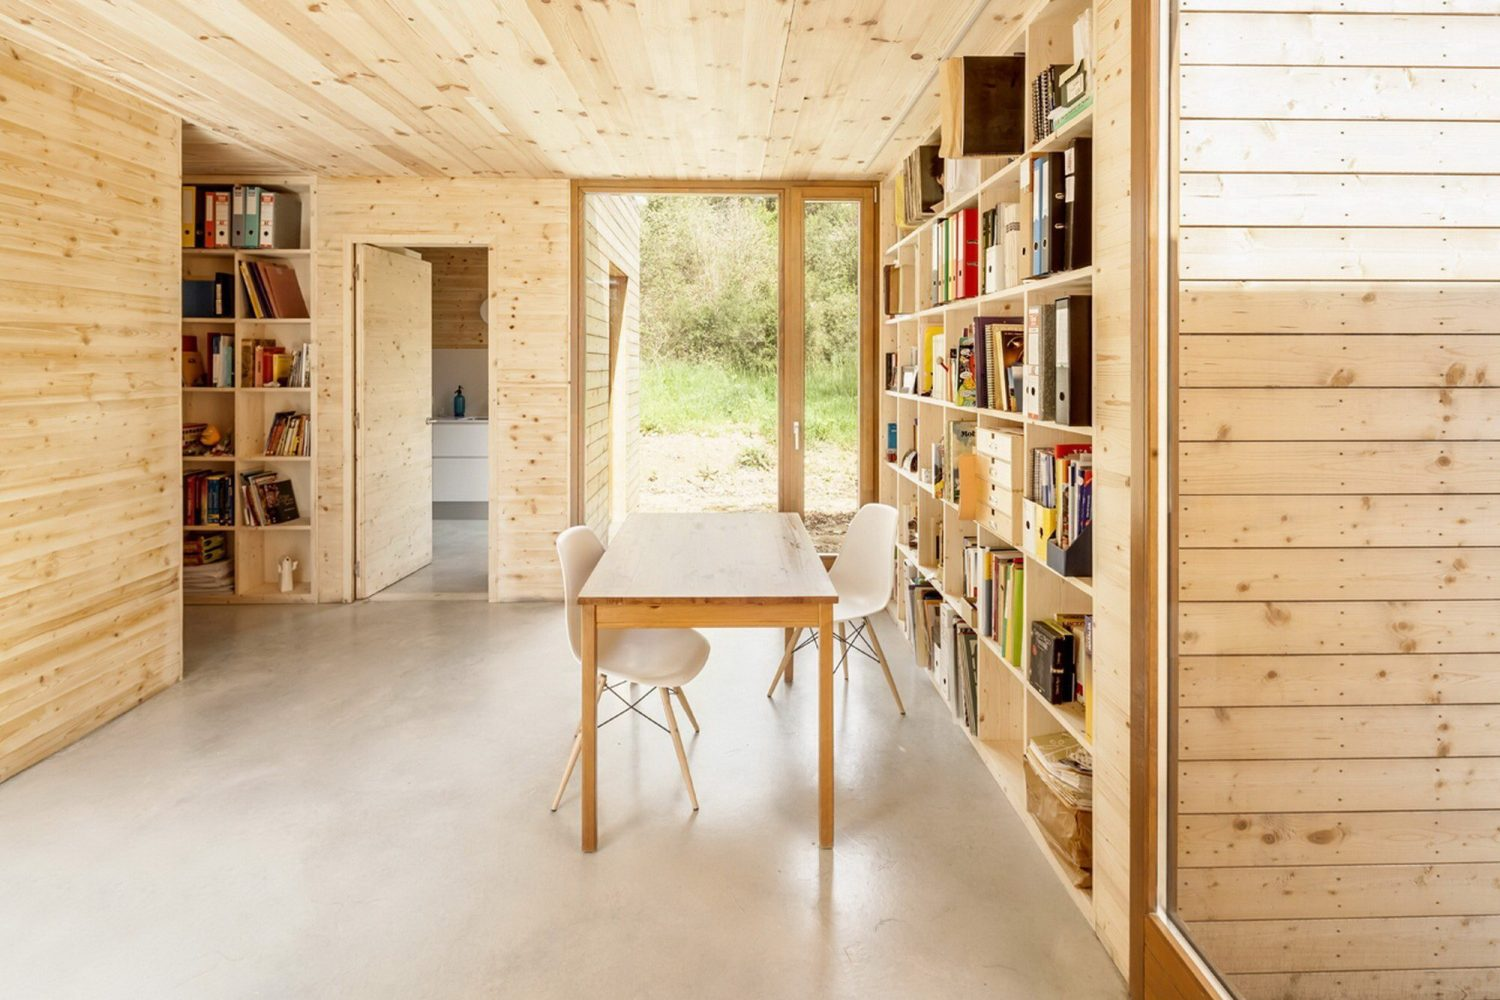 GG Bioclimatic House by Alventosa Morell Arquitectes